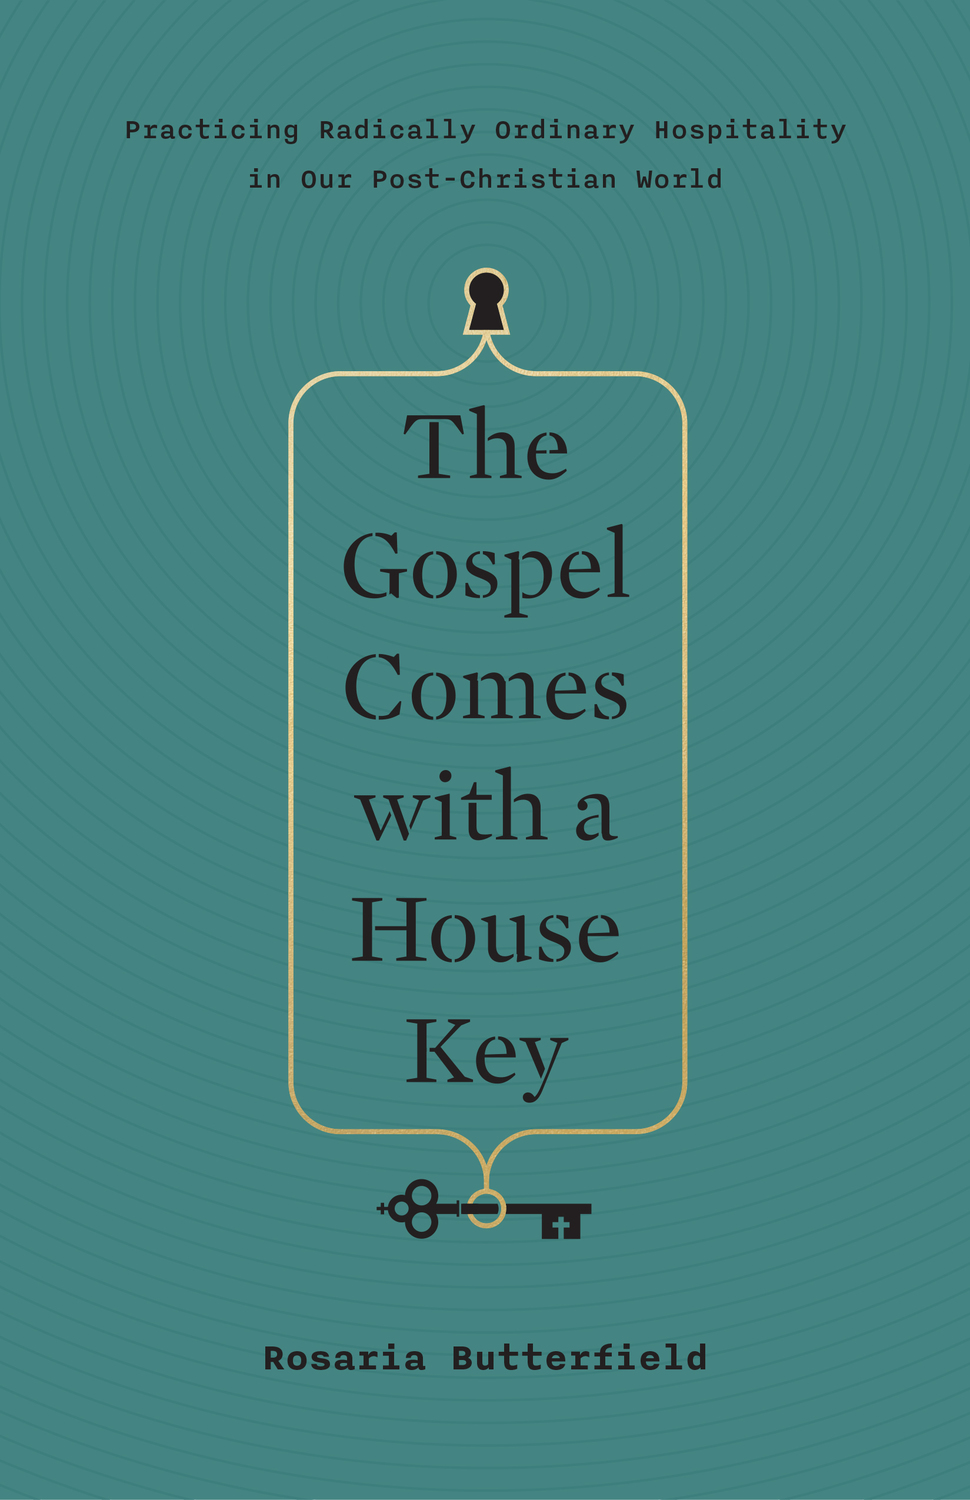 The Gospel Comes with a House Key